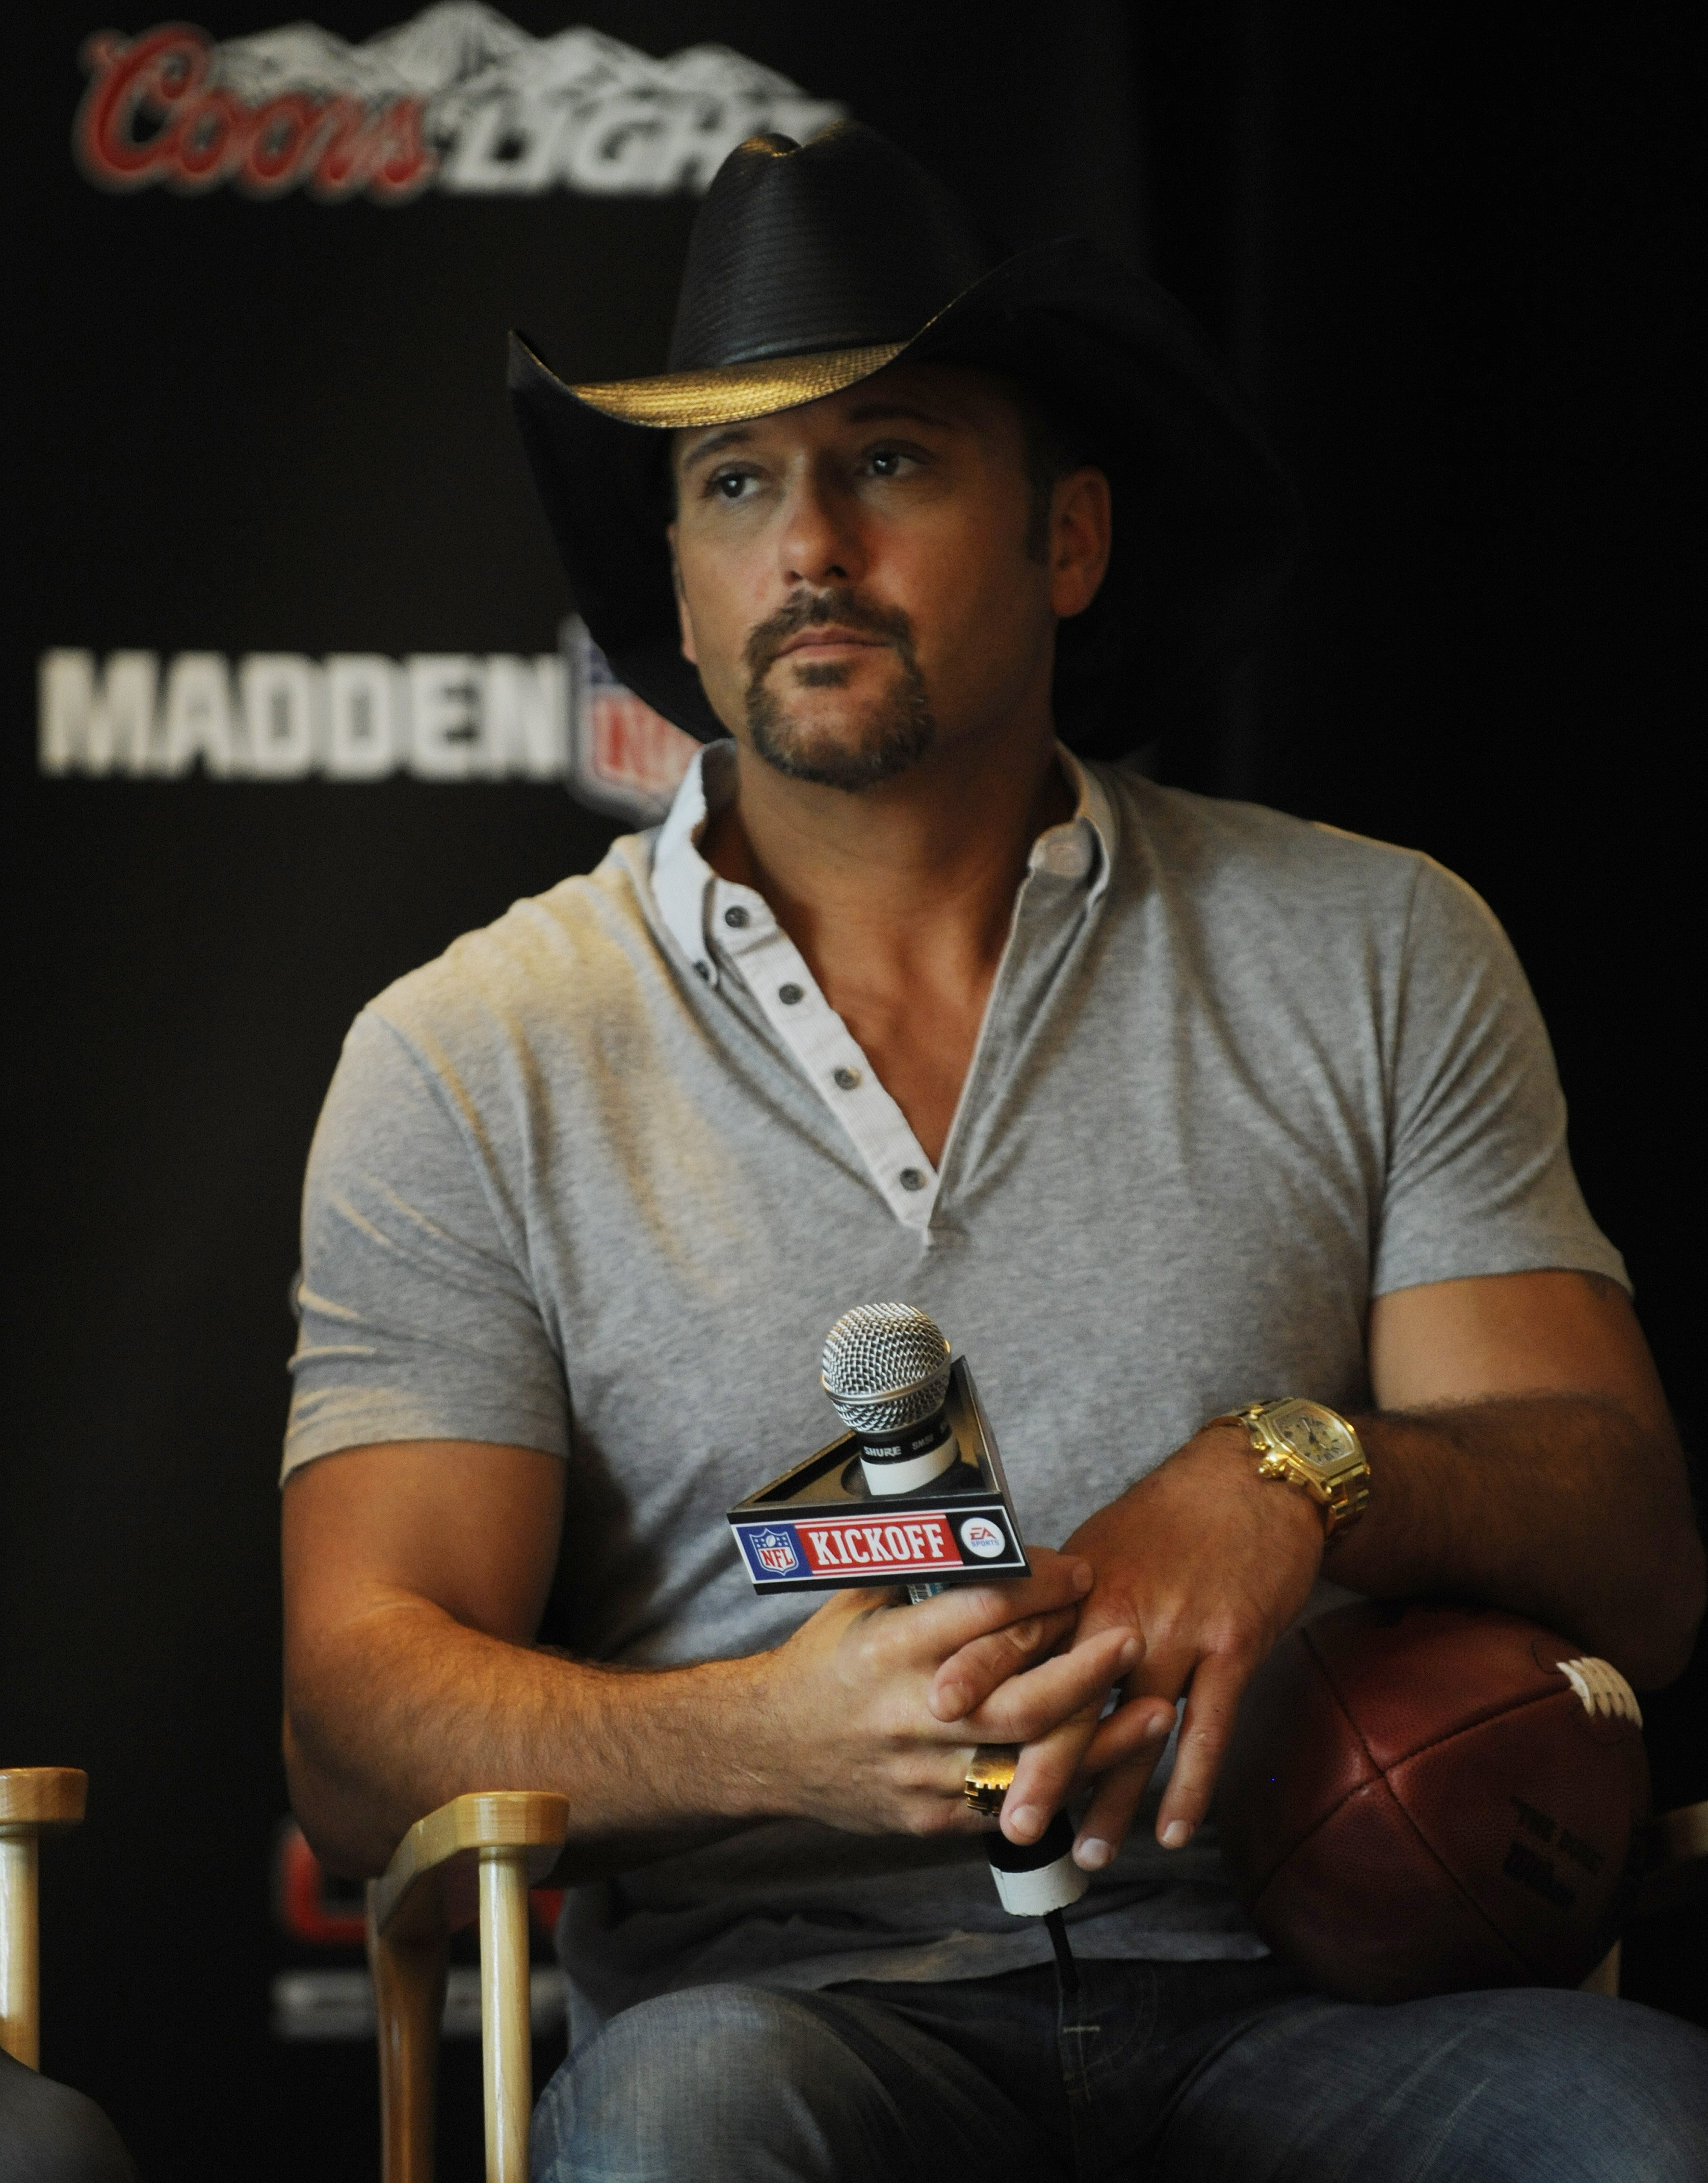 Image Credits: Getty Images / Jeff Swensen | Tim McGraw for the 2009 NFL Opening Kickoff event on September 9, 2009 in Pittsburgh, Pennsylvania.